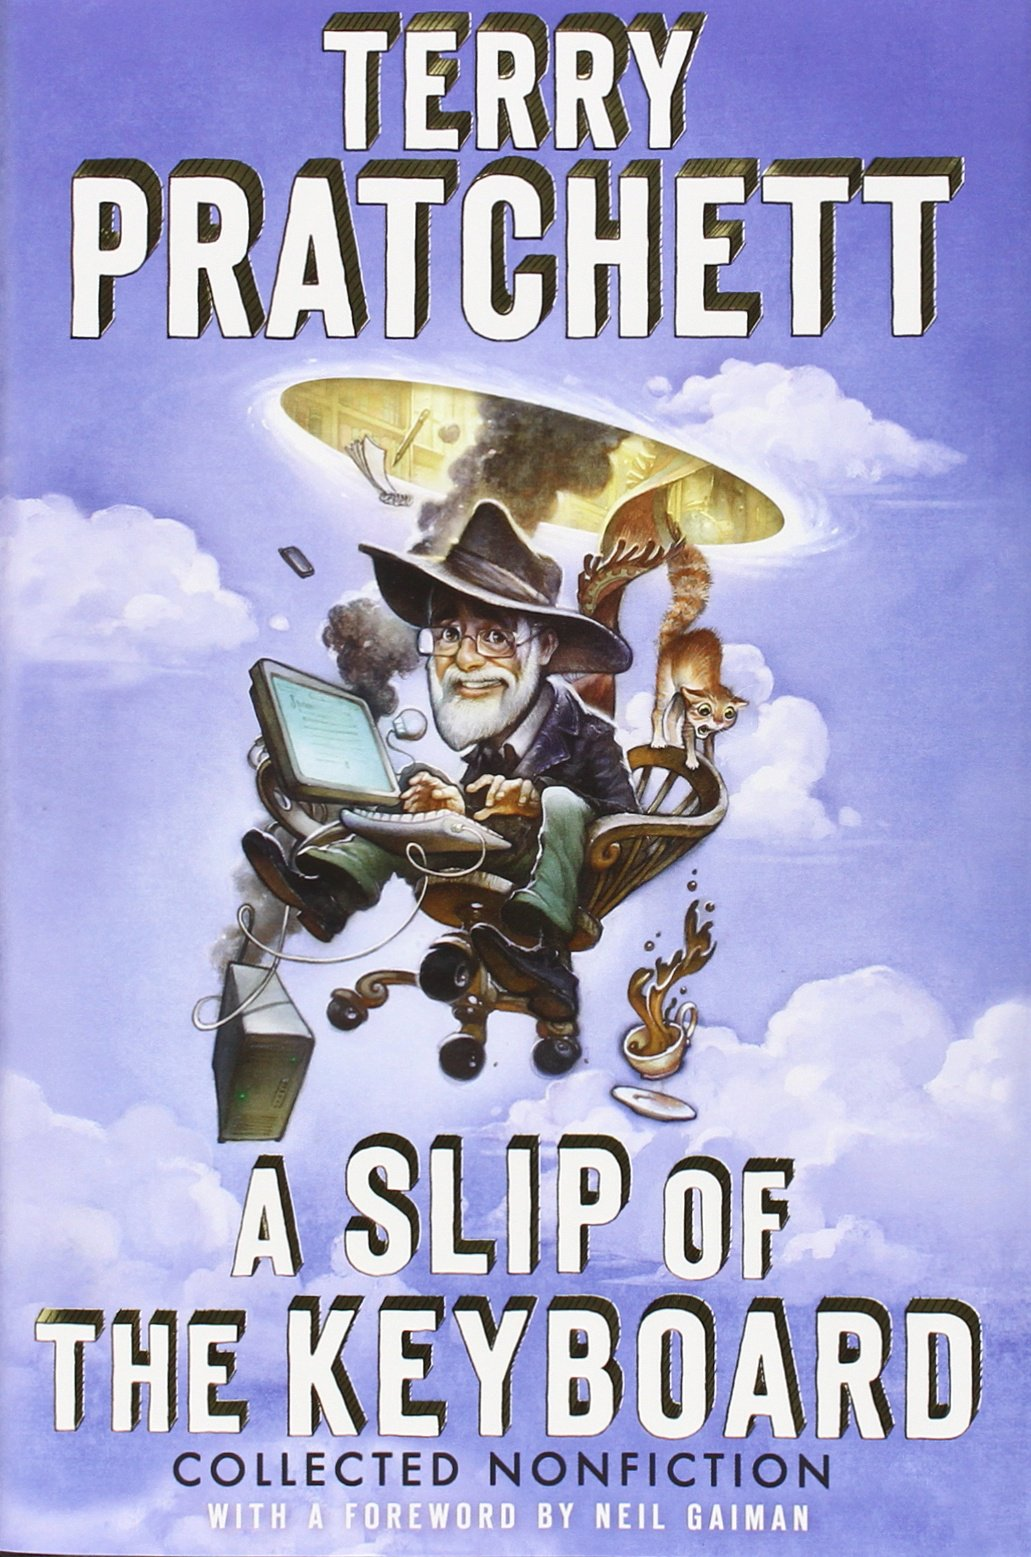 terry pratchett notes Discworld is a comic fantasy book series by british author terry pratchett set on the discworld, a flat world balanced on the backs of four elephants which are in turn standing on the back of a giant turtle, the great a'tuinthe stories are arranged in several different story arcs that are further explained in the wikipedia article on the discworld reading.